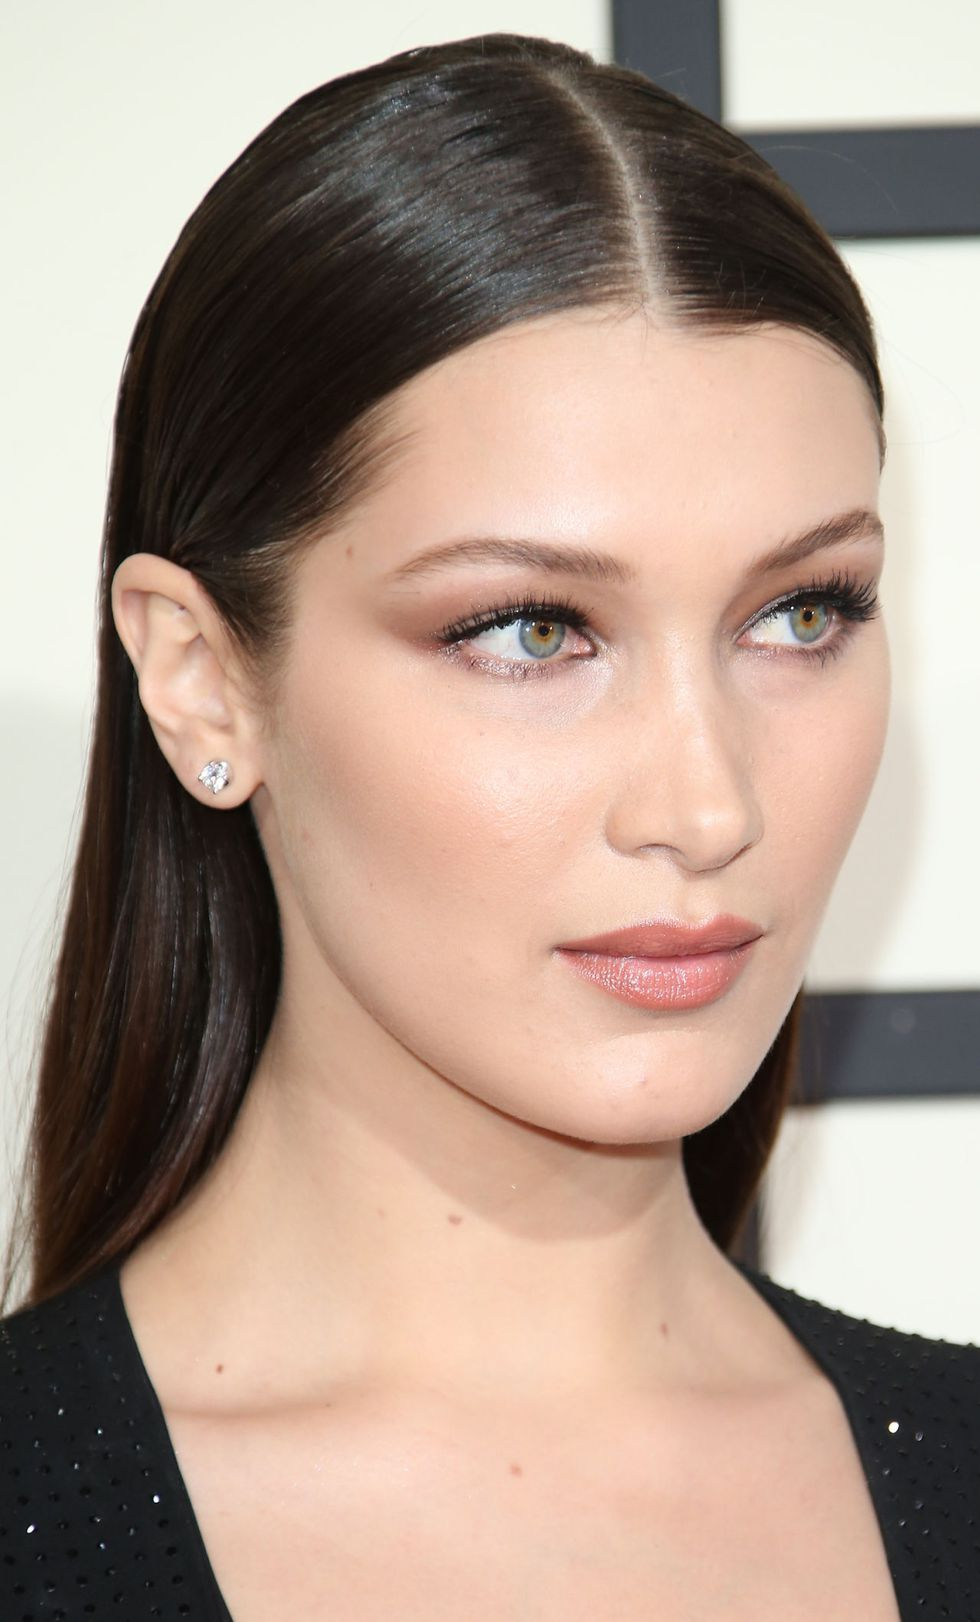 soft-natural-how-to-do-your-makeup-for-wedding-guest-beauty-bella-hadid.jpg